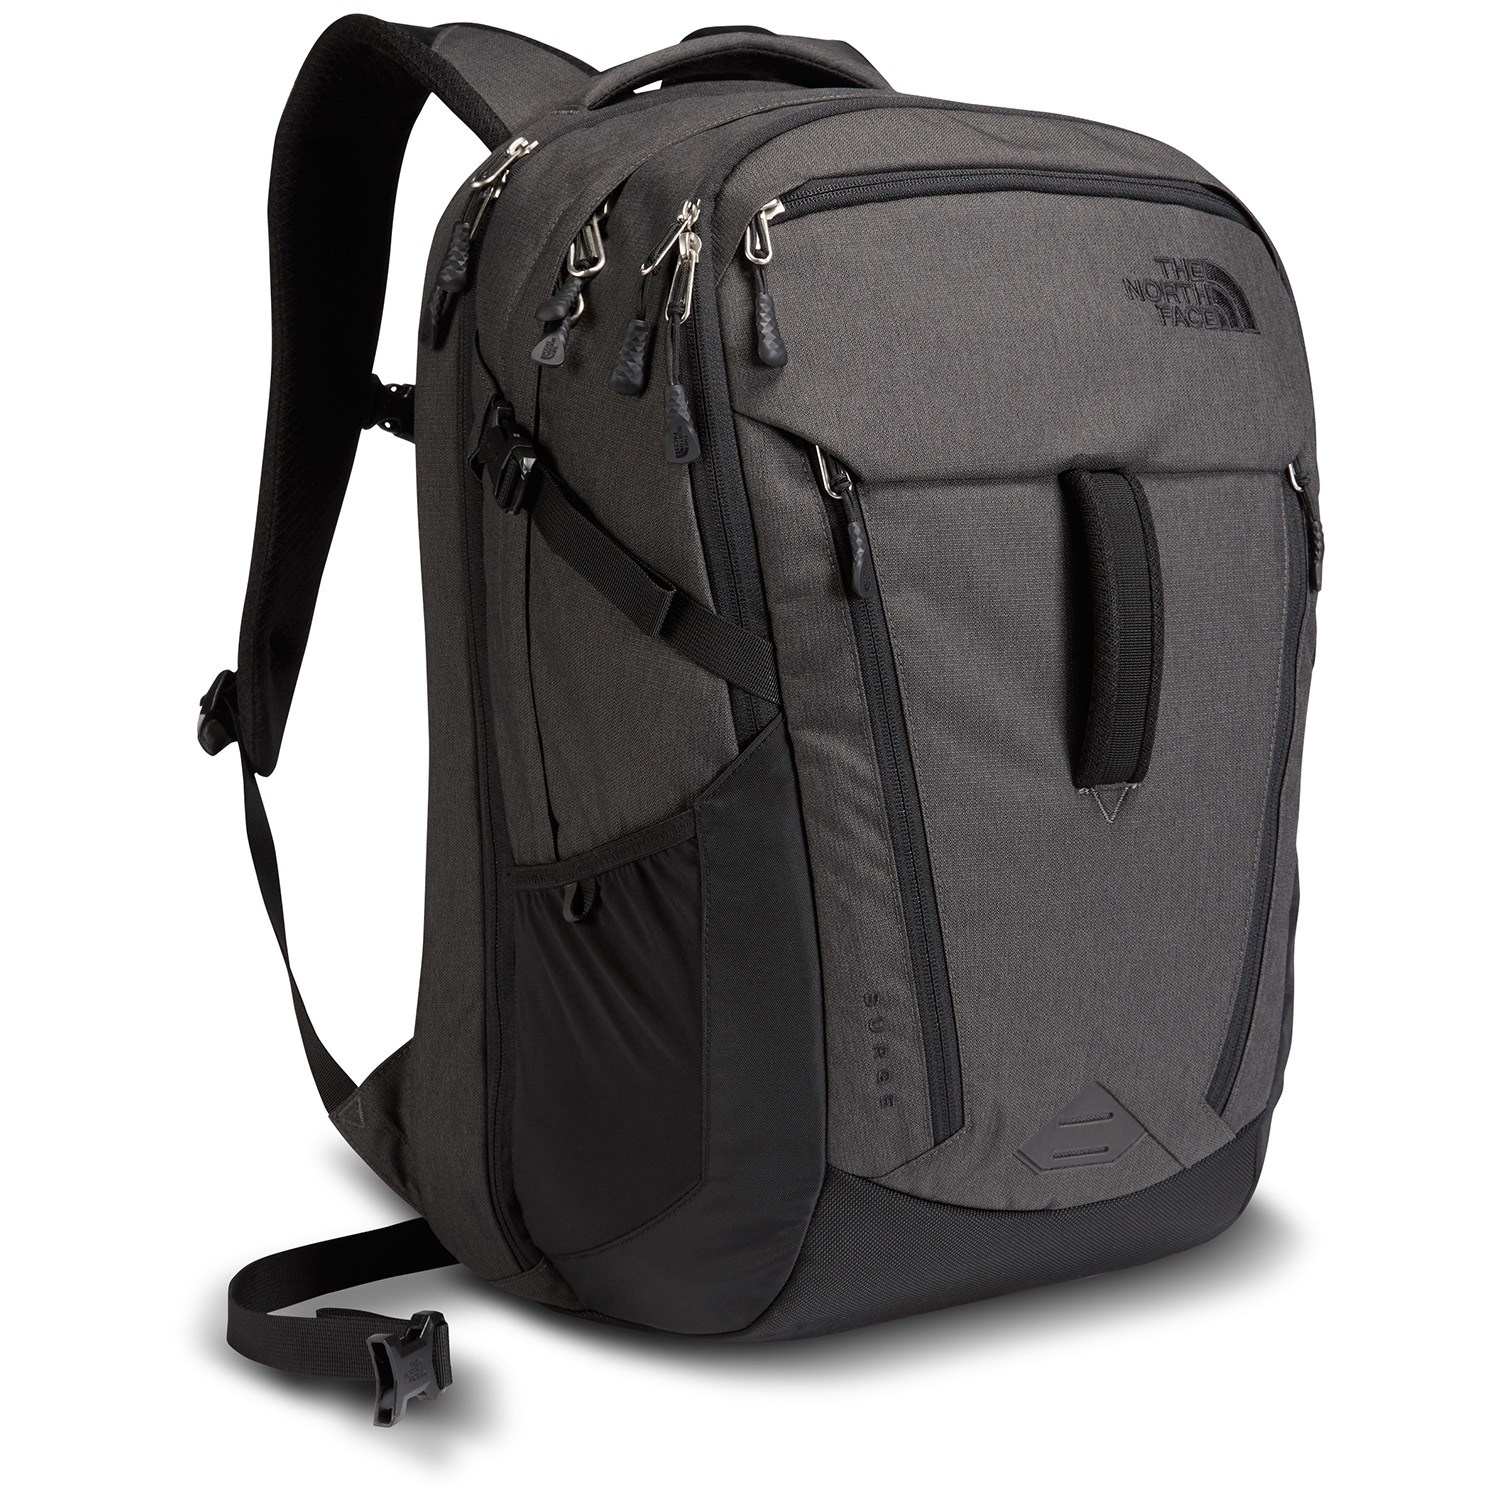 39f51c8ad The North Face Surge Backpack